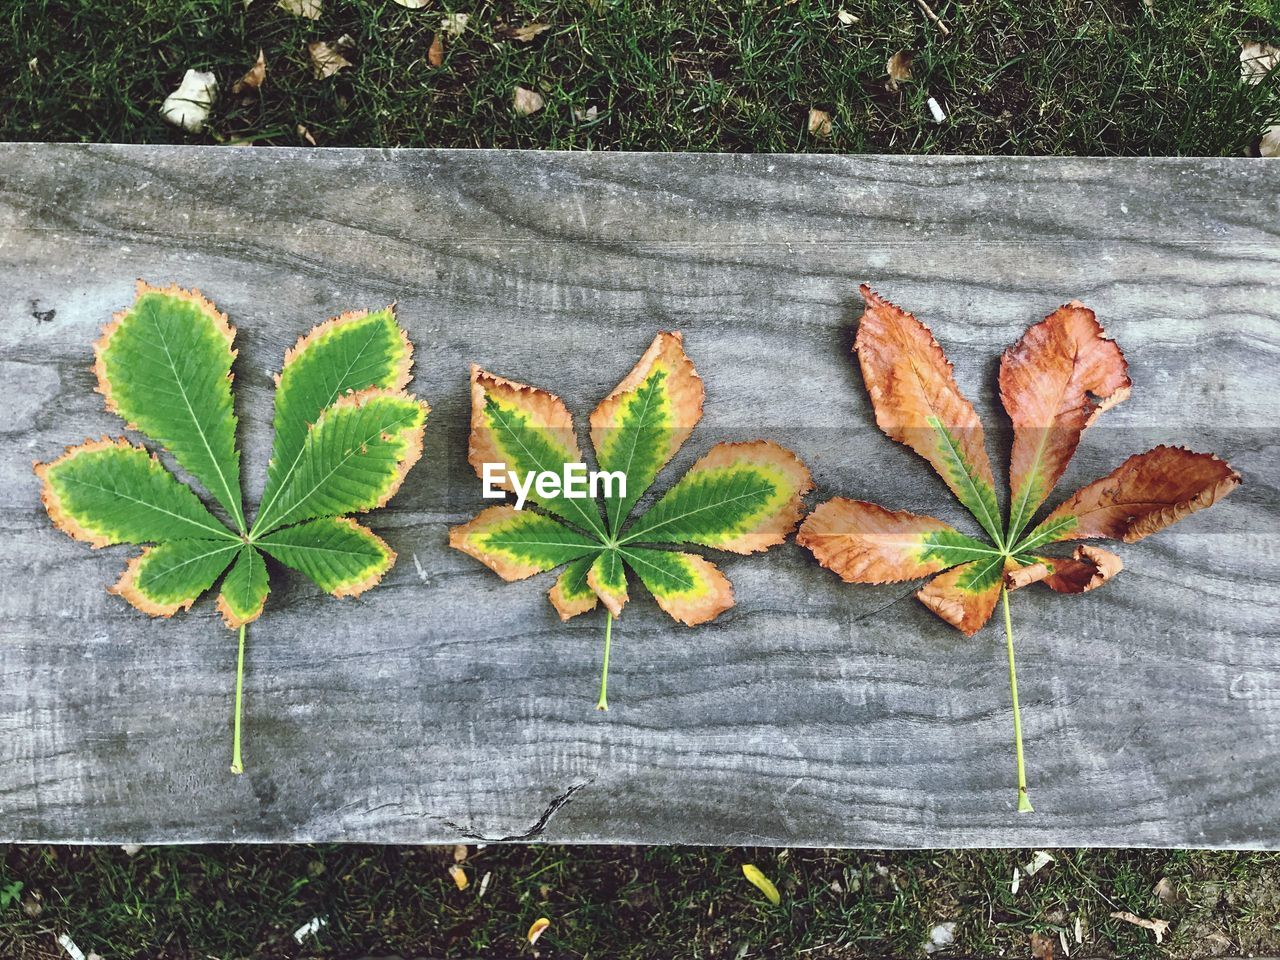 leaf, plant part, plant, no people, high angle view, nature, day, directly above, green color, leaves, close-up, outdoors, wood - material, growth, autumn, vulnerability, fragility, freshness, food, beauty in nature